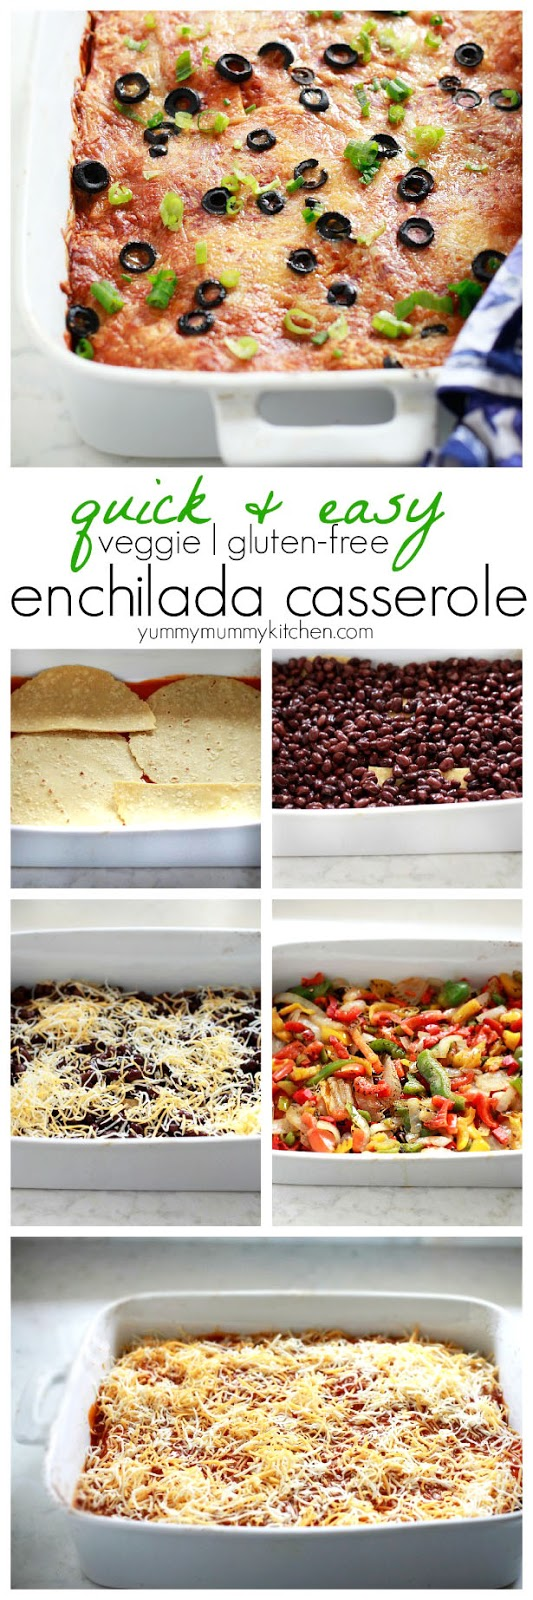 A collage of steps showing how to make an enchilada casserole. Layering beans, tortillas, peppers, and cheese.